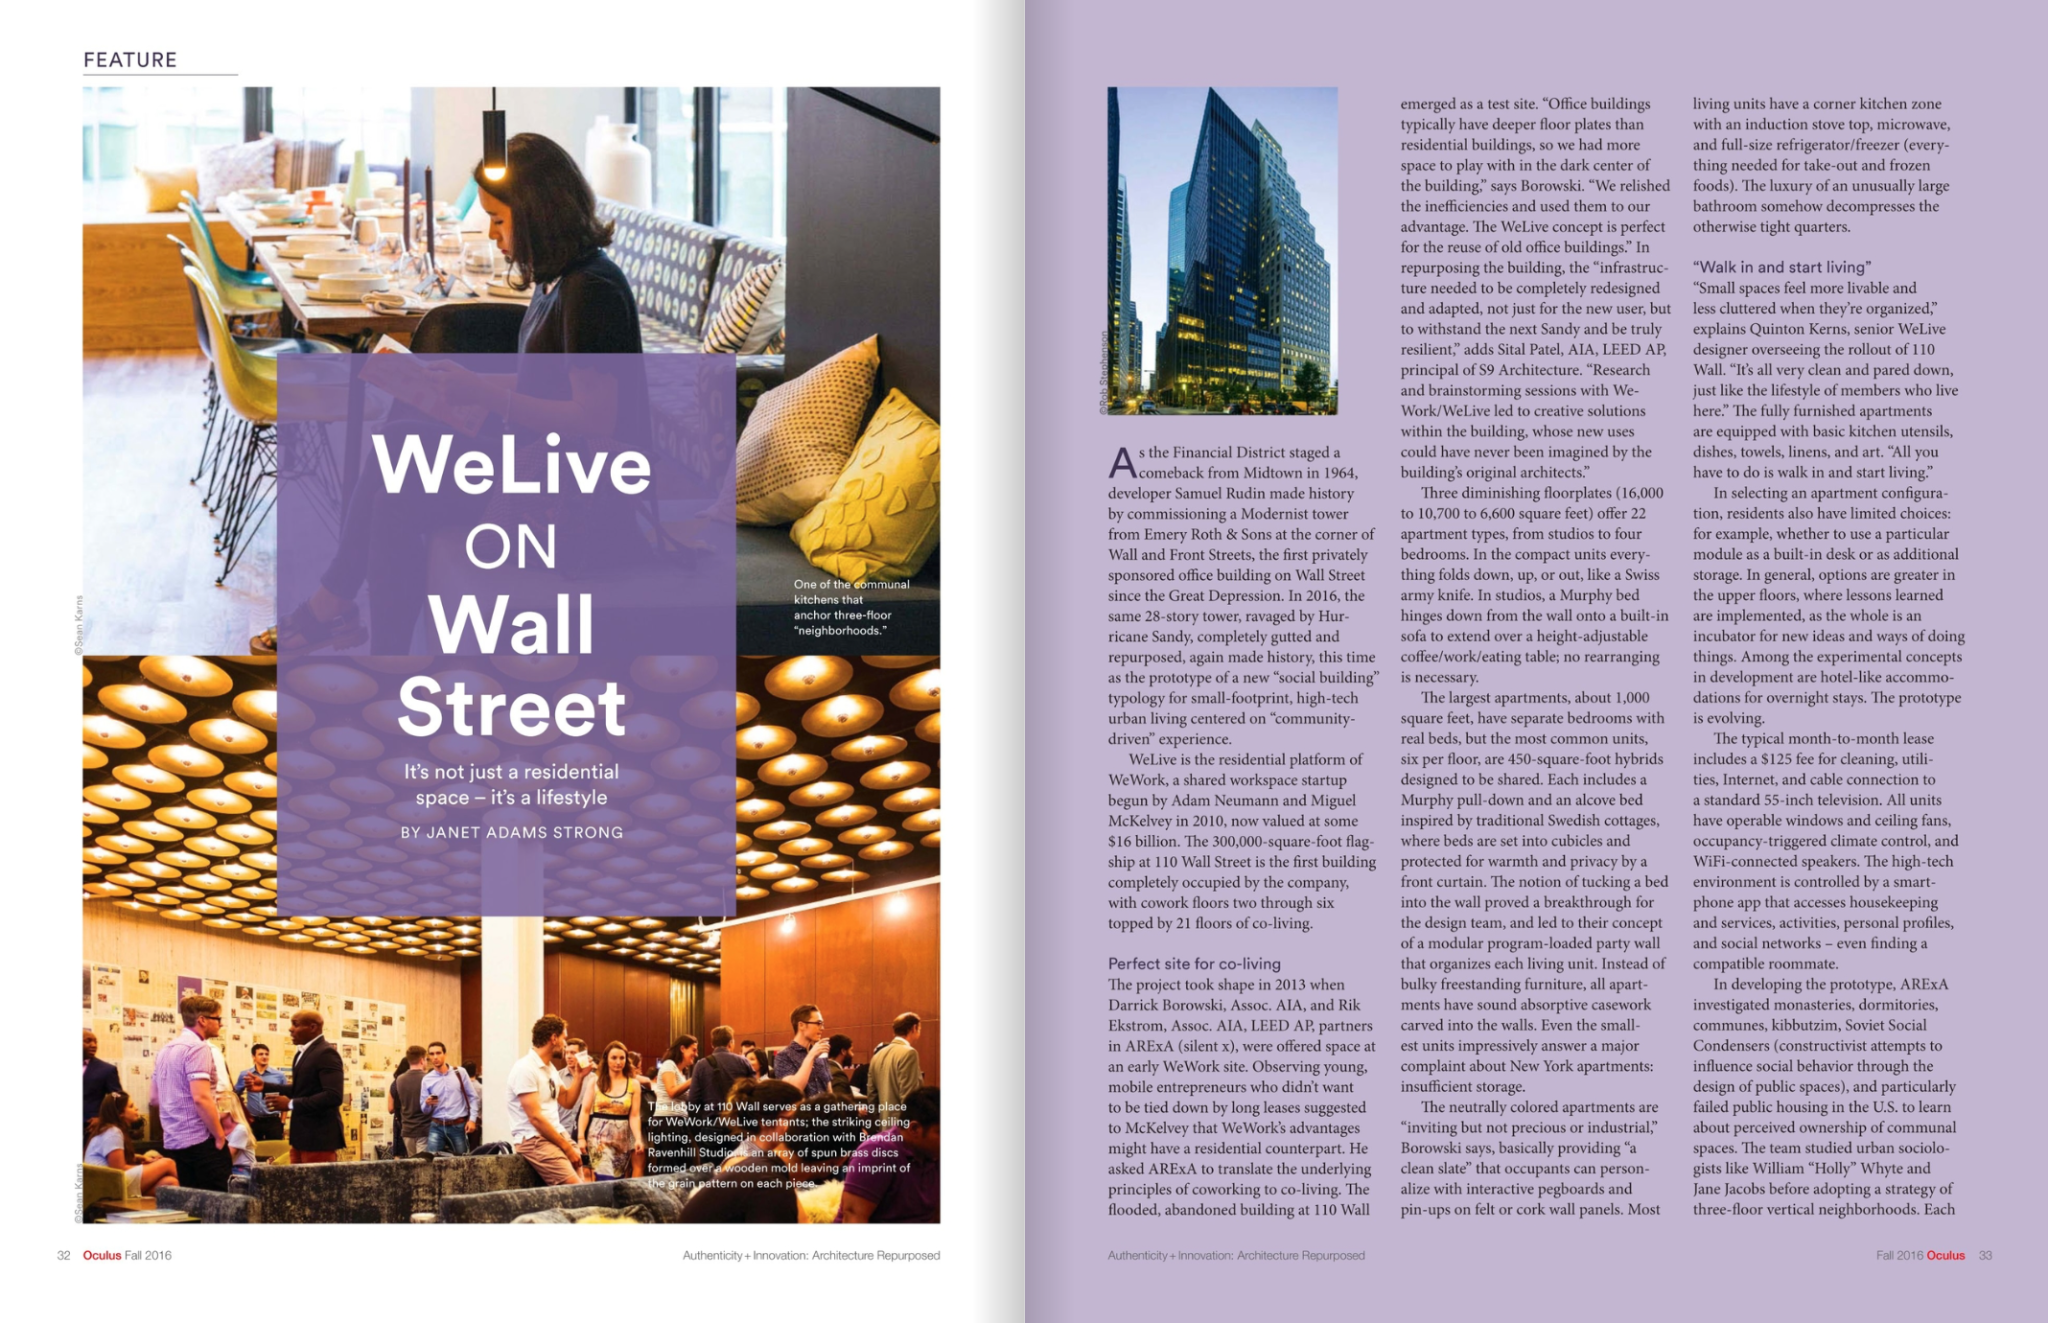 Oculus Magazine speaks with ARE×A on the design process behind WeLive